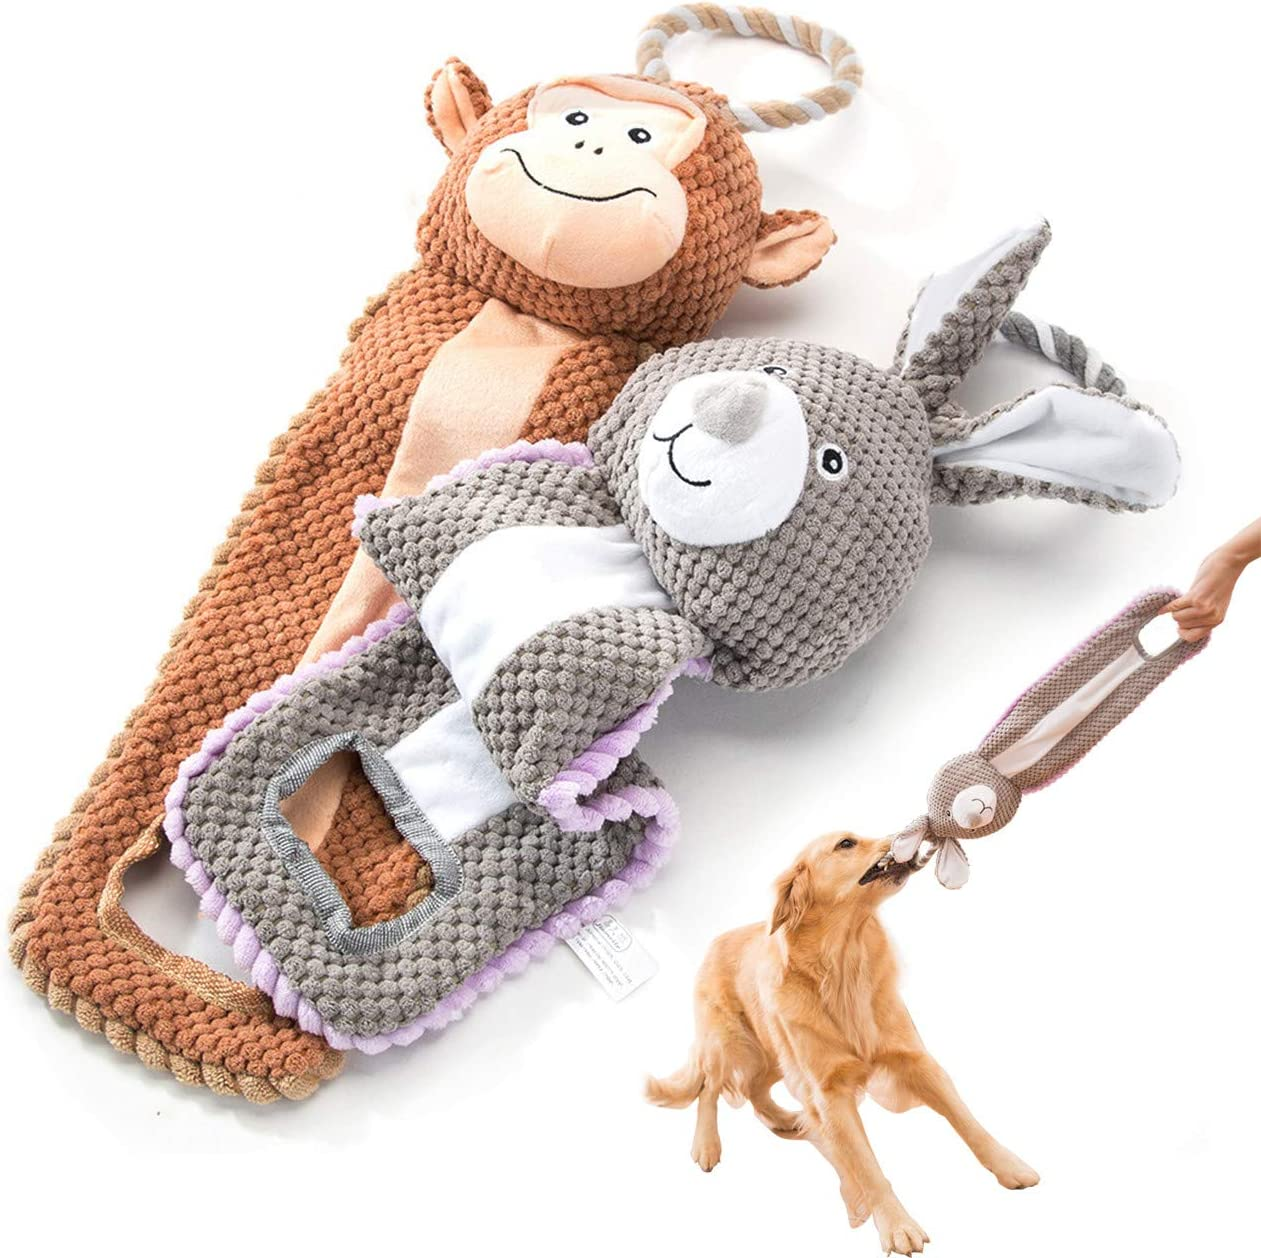 Dog Rope Toys Cute Animals Design Cotton Puppy Toys for Small Dogs Rope Dog Toy Set pack of 6